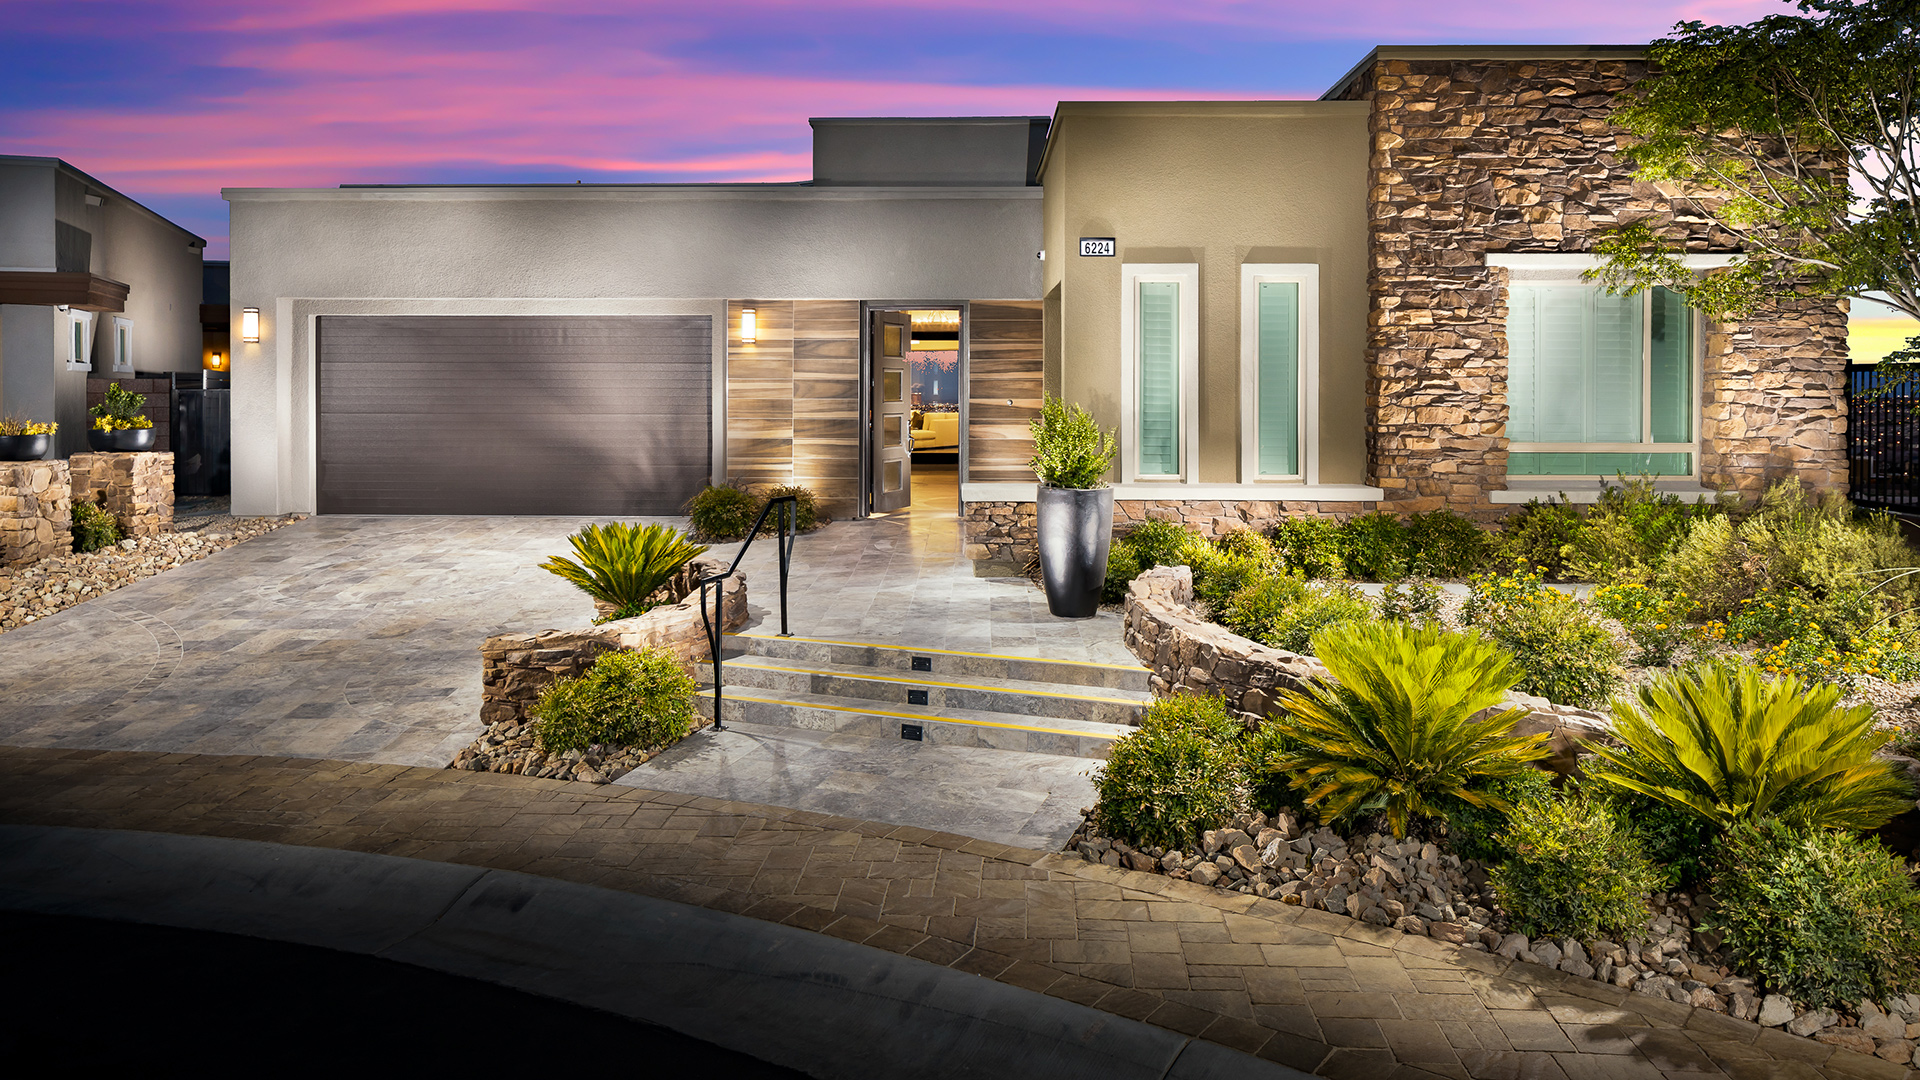 This is Actually the Completely New Image Of Patio Homes for Sale Henderson Nv